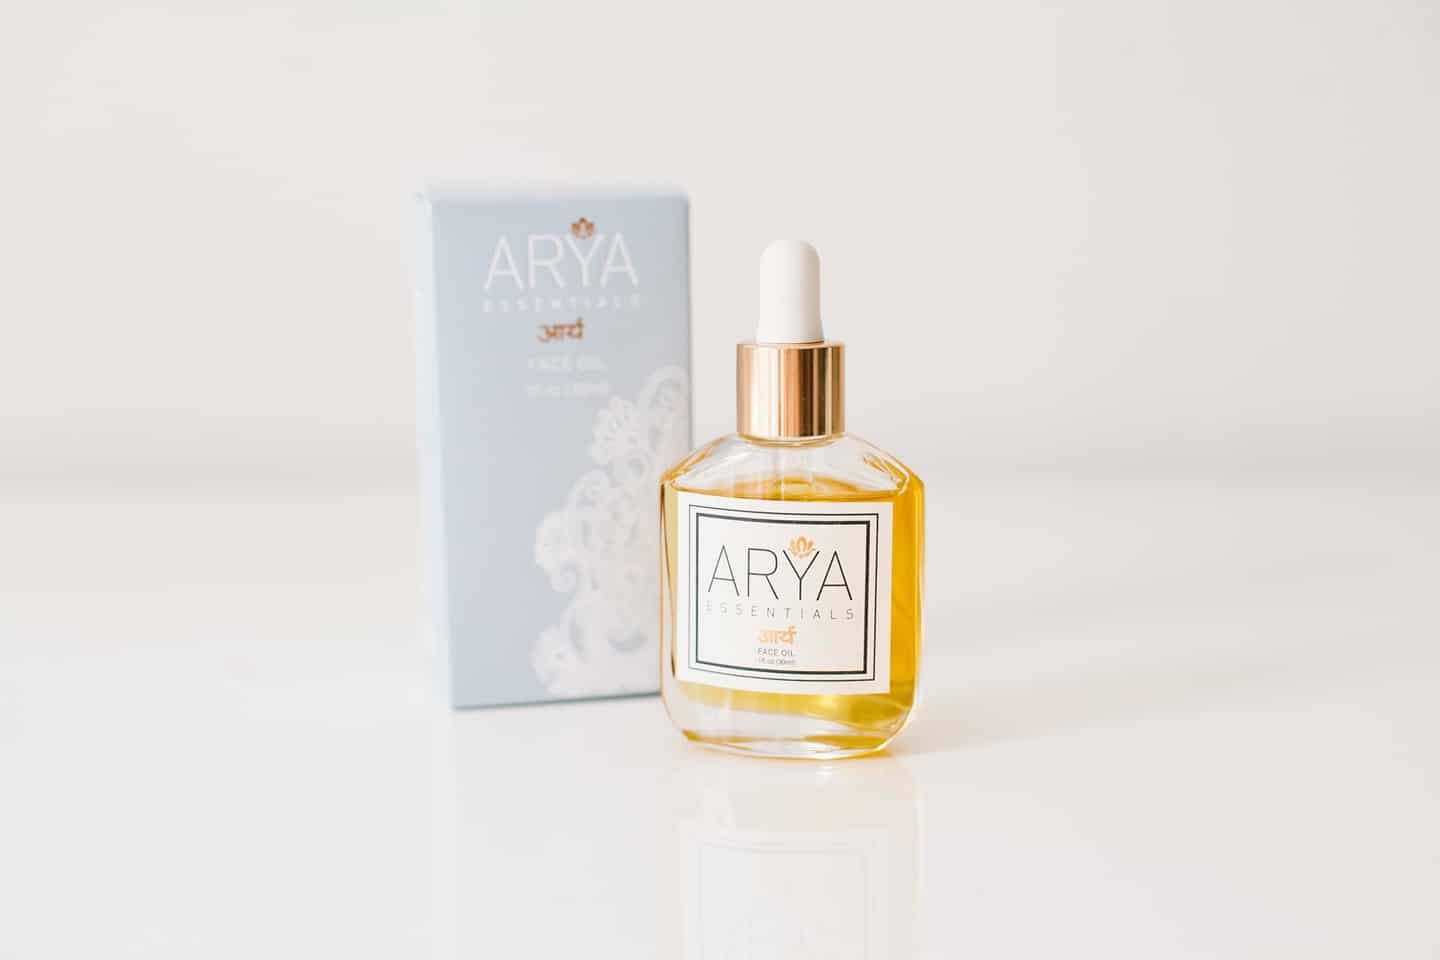 Tiffani Thiessen's Favorite Things • May 2016 • Arya Essentials- A beautiful anti aging face oil that smells devine • Photo by Megan Welker